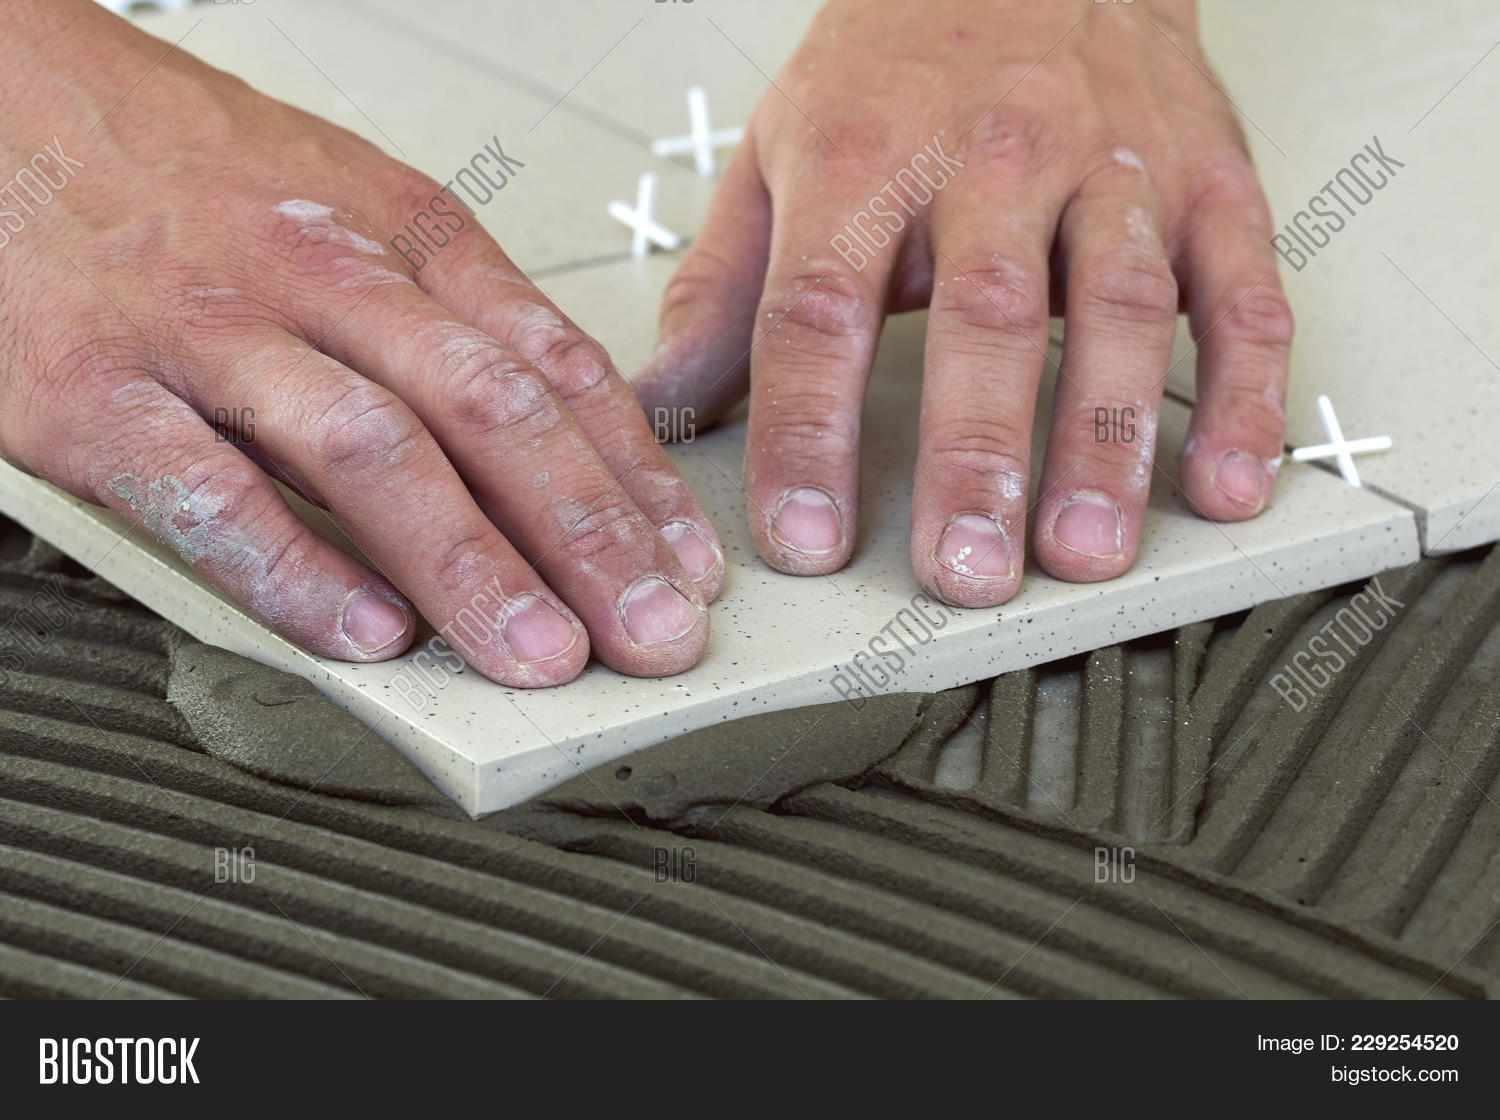 Workers hands ceramic tiles tools image photo bigstock workers hands with ceramic tiles and tools for tiler floor tiles installation home improvement dailygadgetfo Image collections